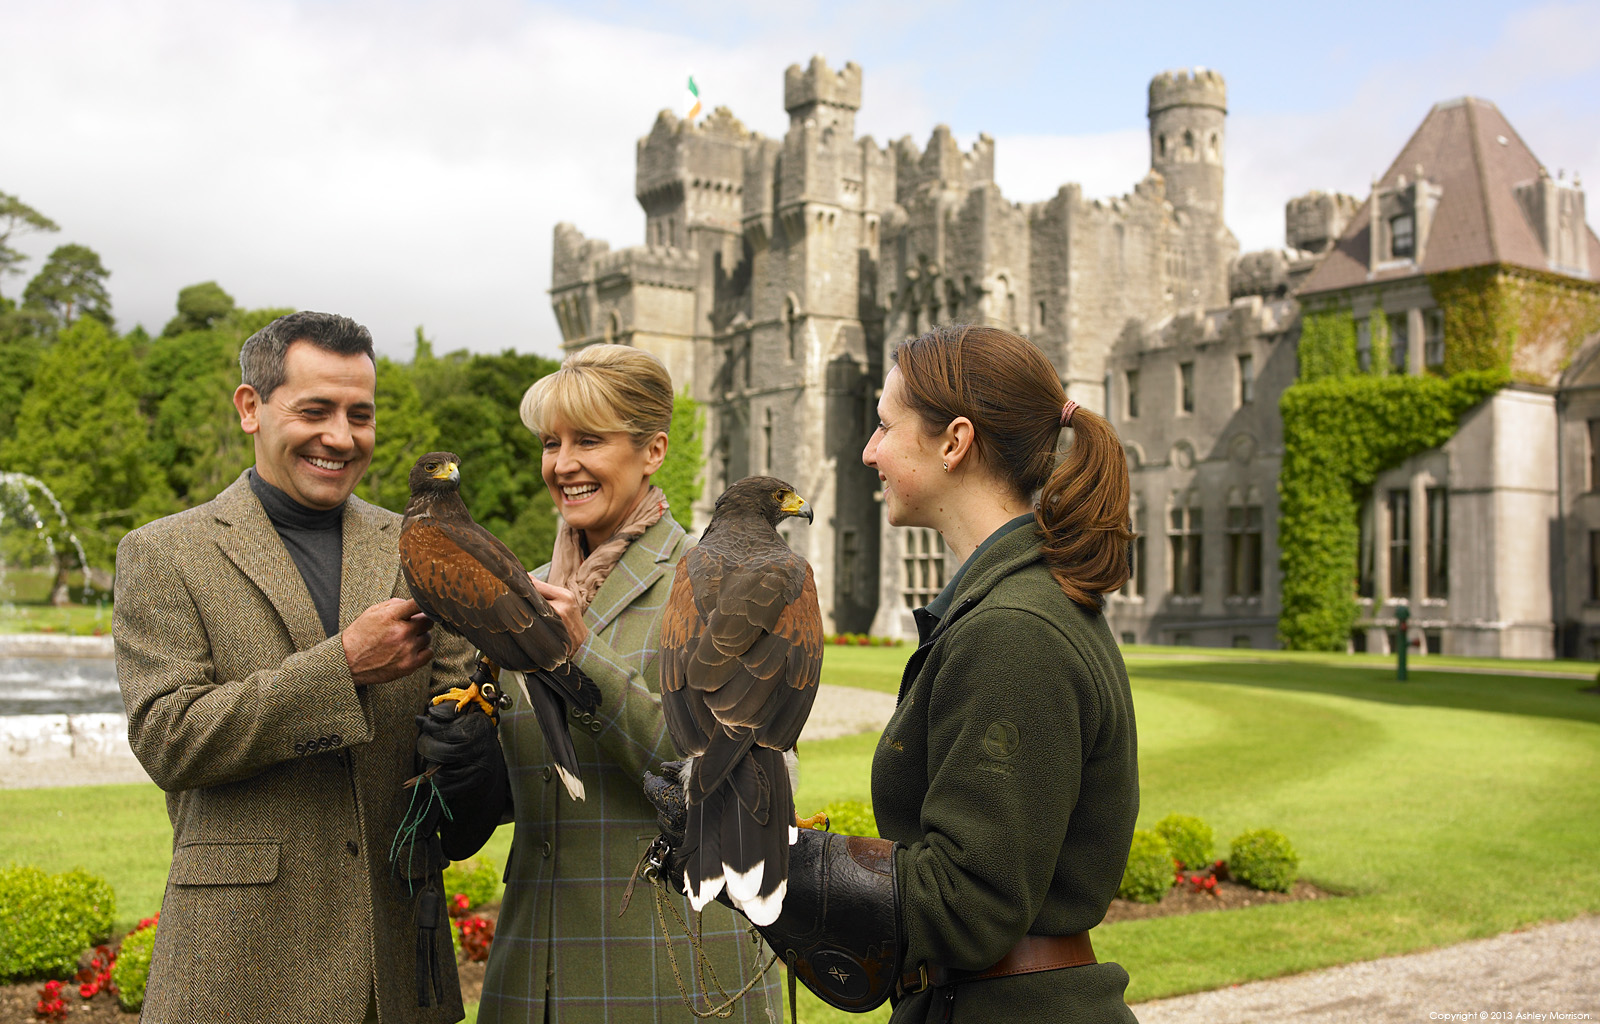 Guests with Harris hawks at Ashford Castle in County Mayo by Ashley Morrison.